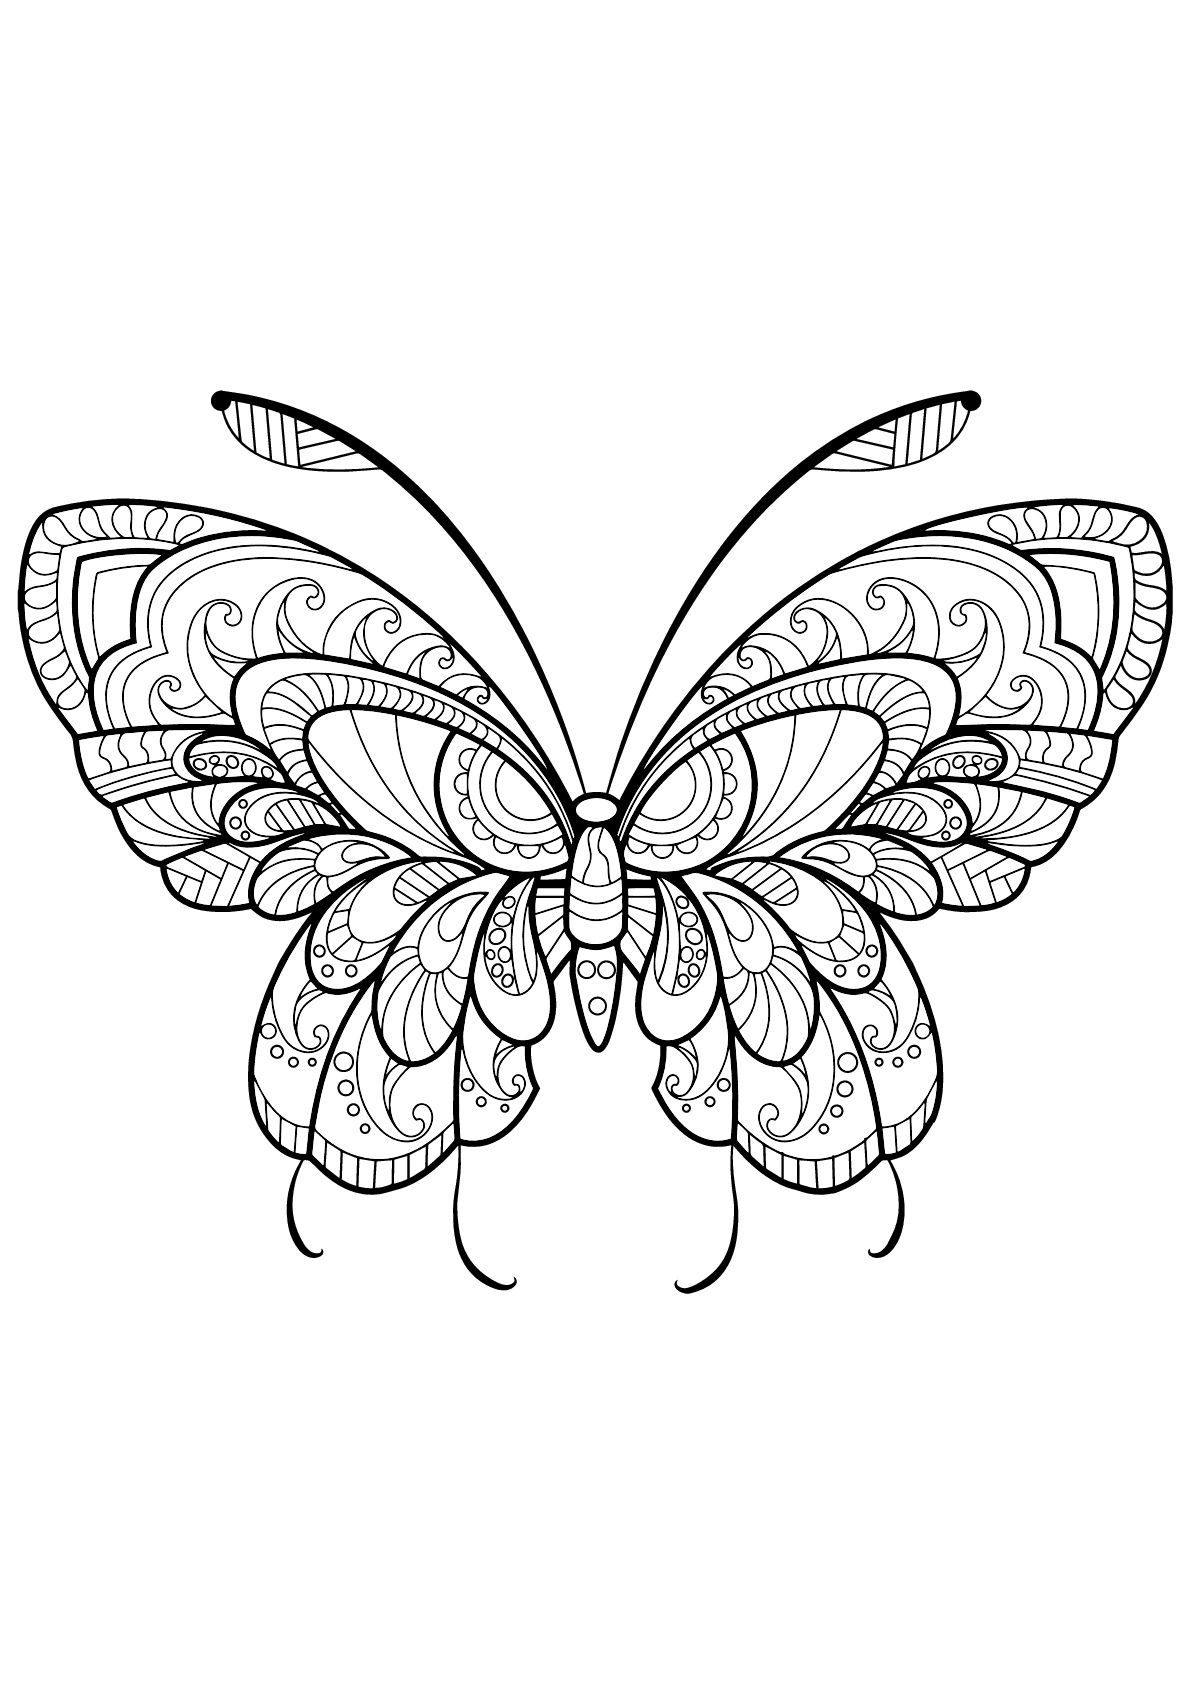 One Of The Most Simple Insect To Color For Your Children These Butterflies Are Only Butterfly Pictures To Color Butterfly Coloring Page Insect Coloring Pages [ 1684 x 1191 Pixel ]